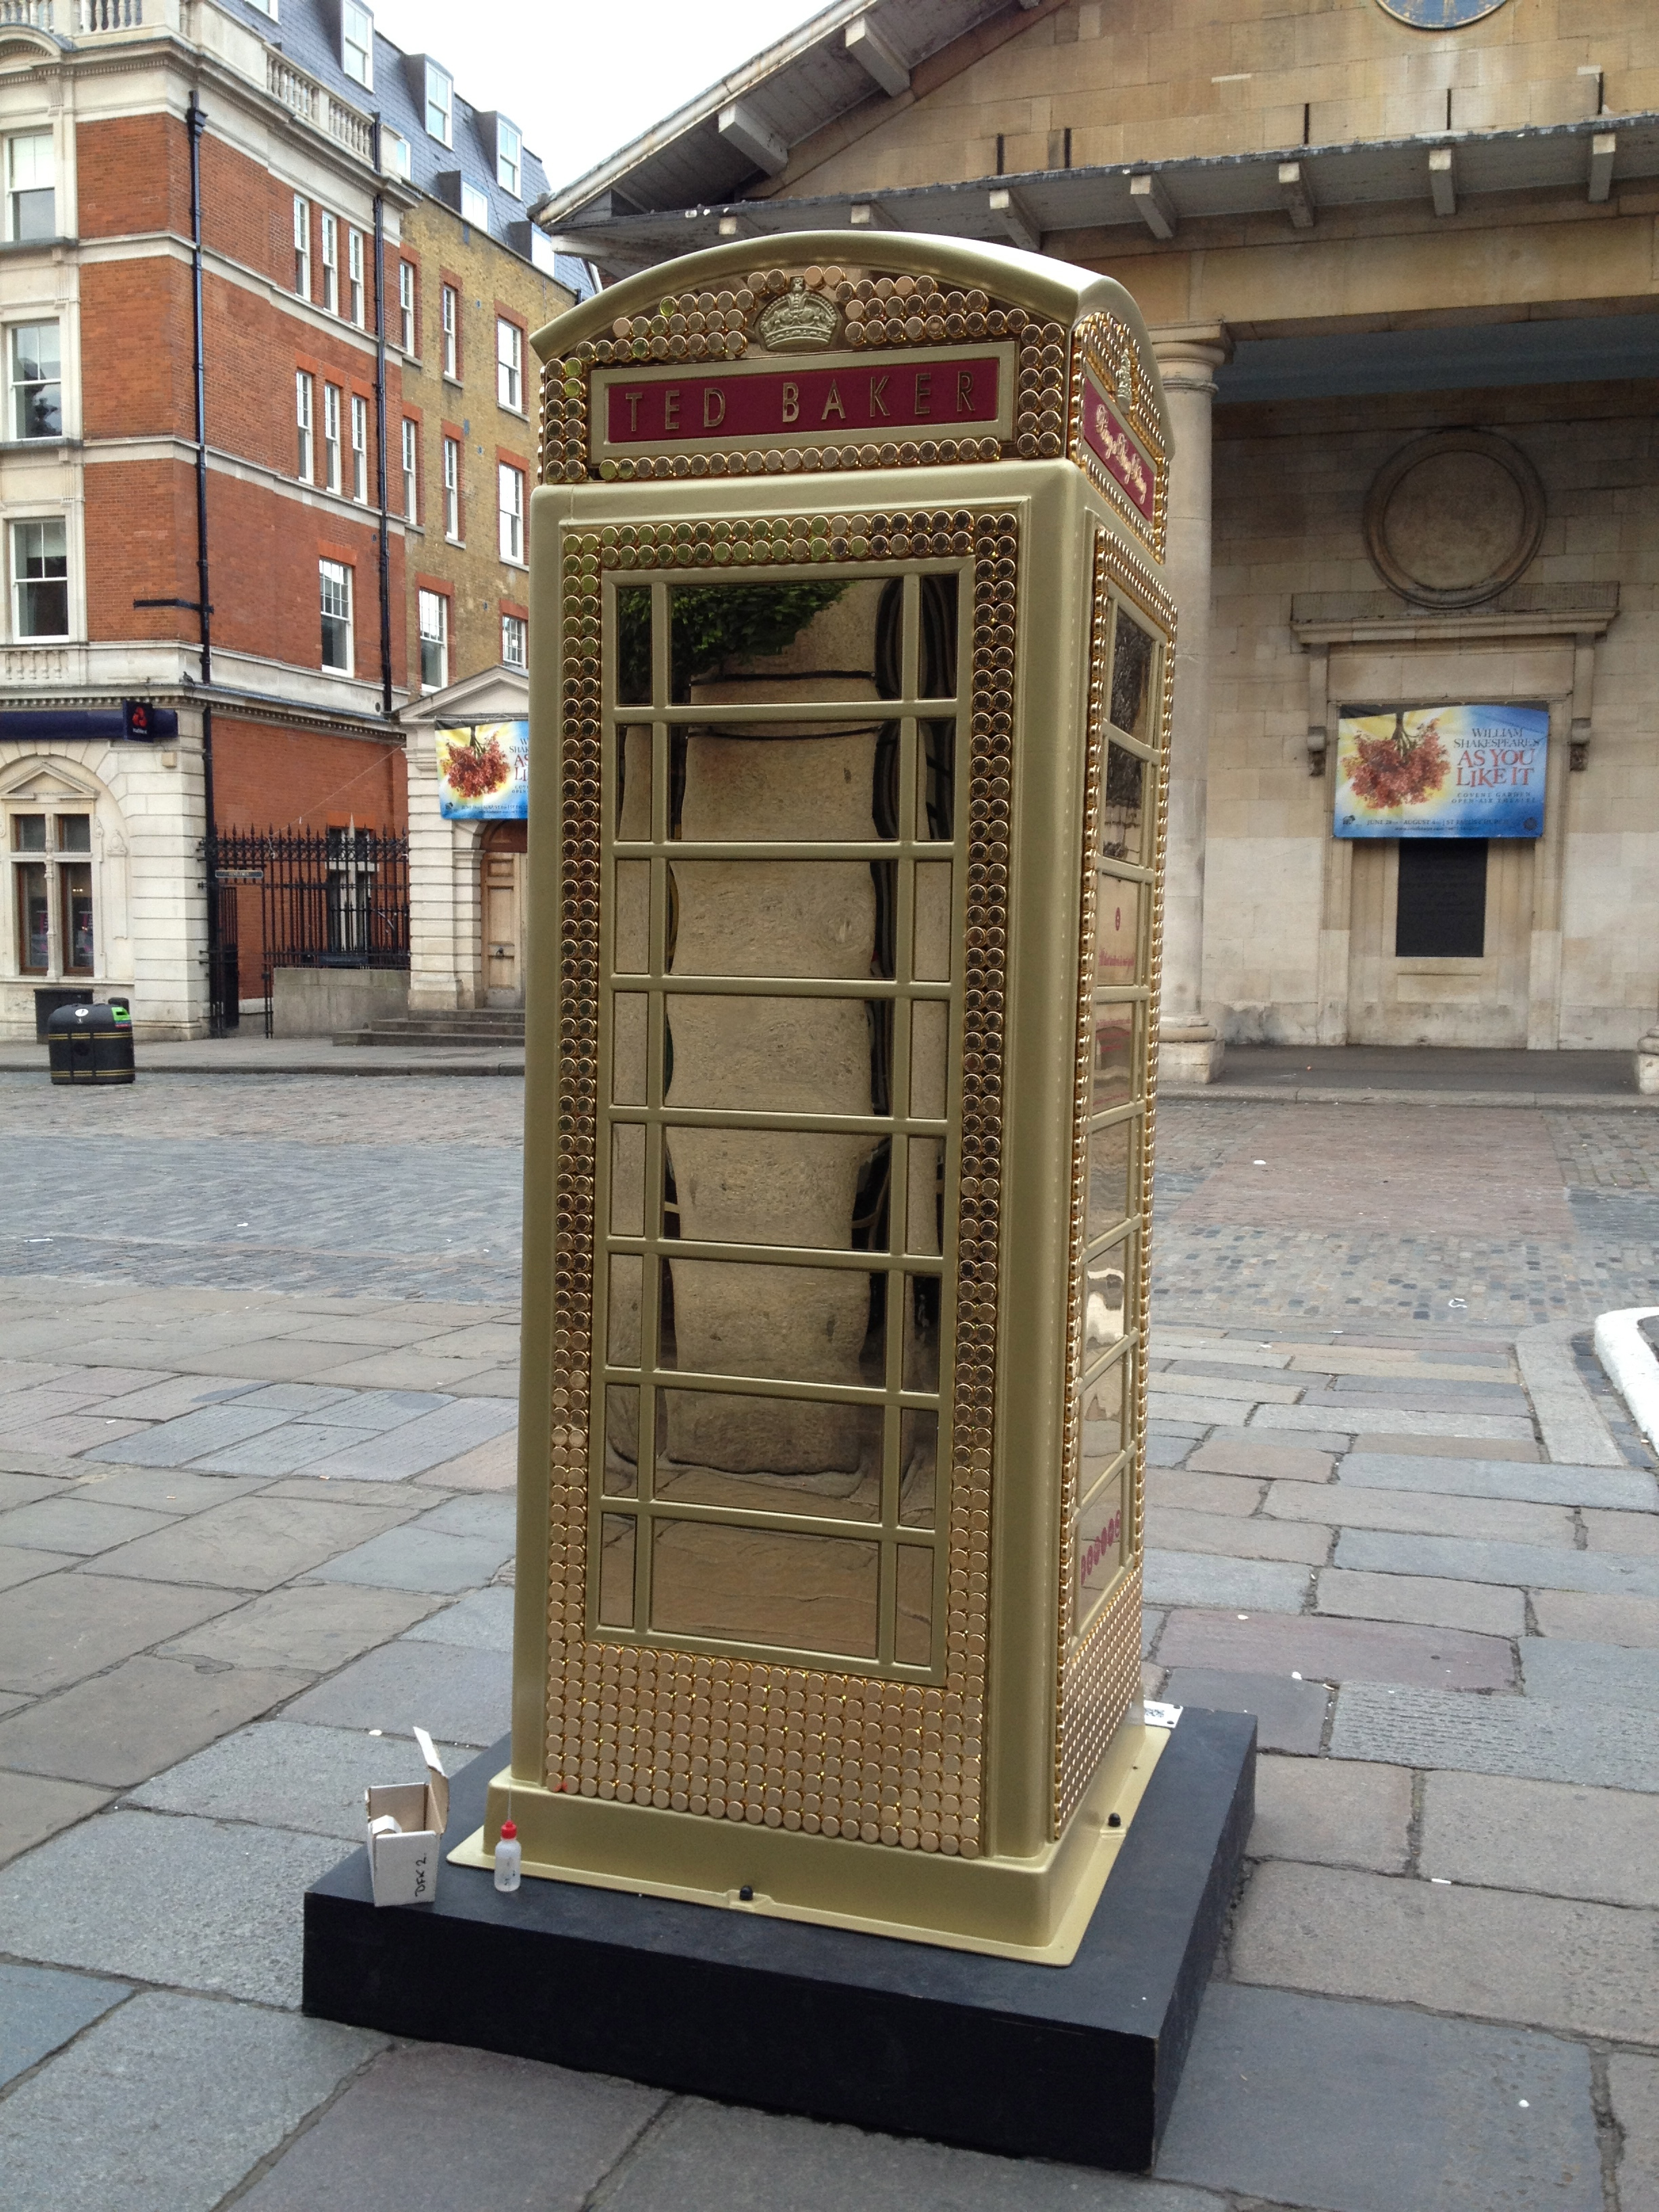 Ted Baker Childline Art Phone box